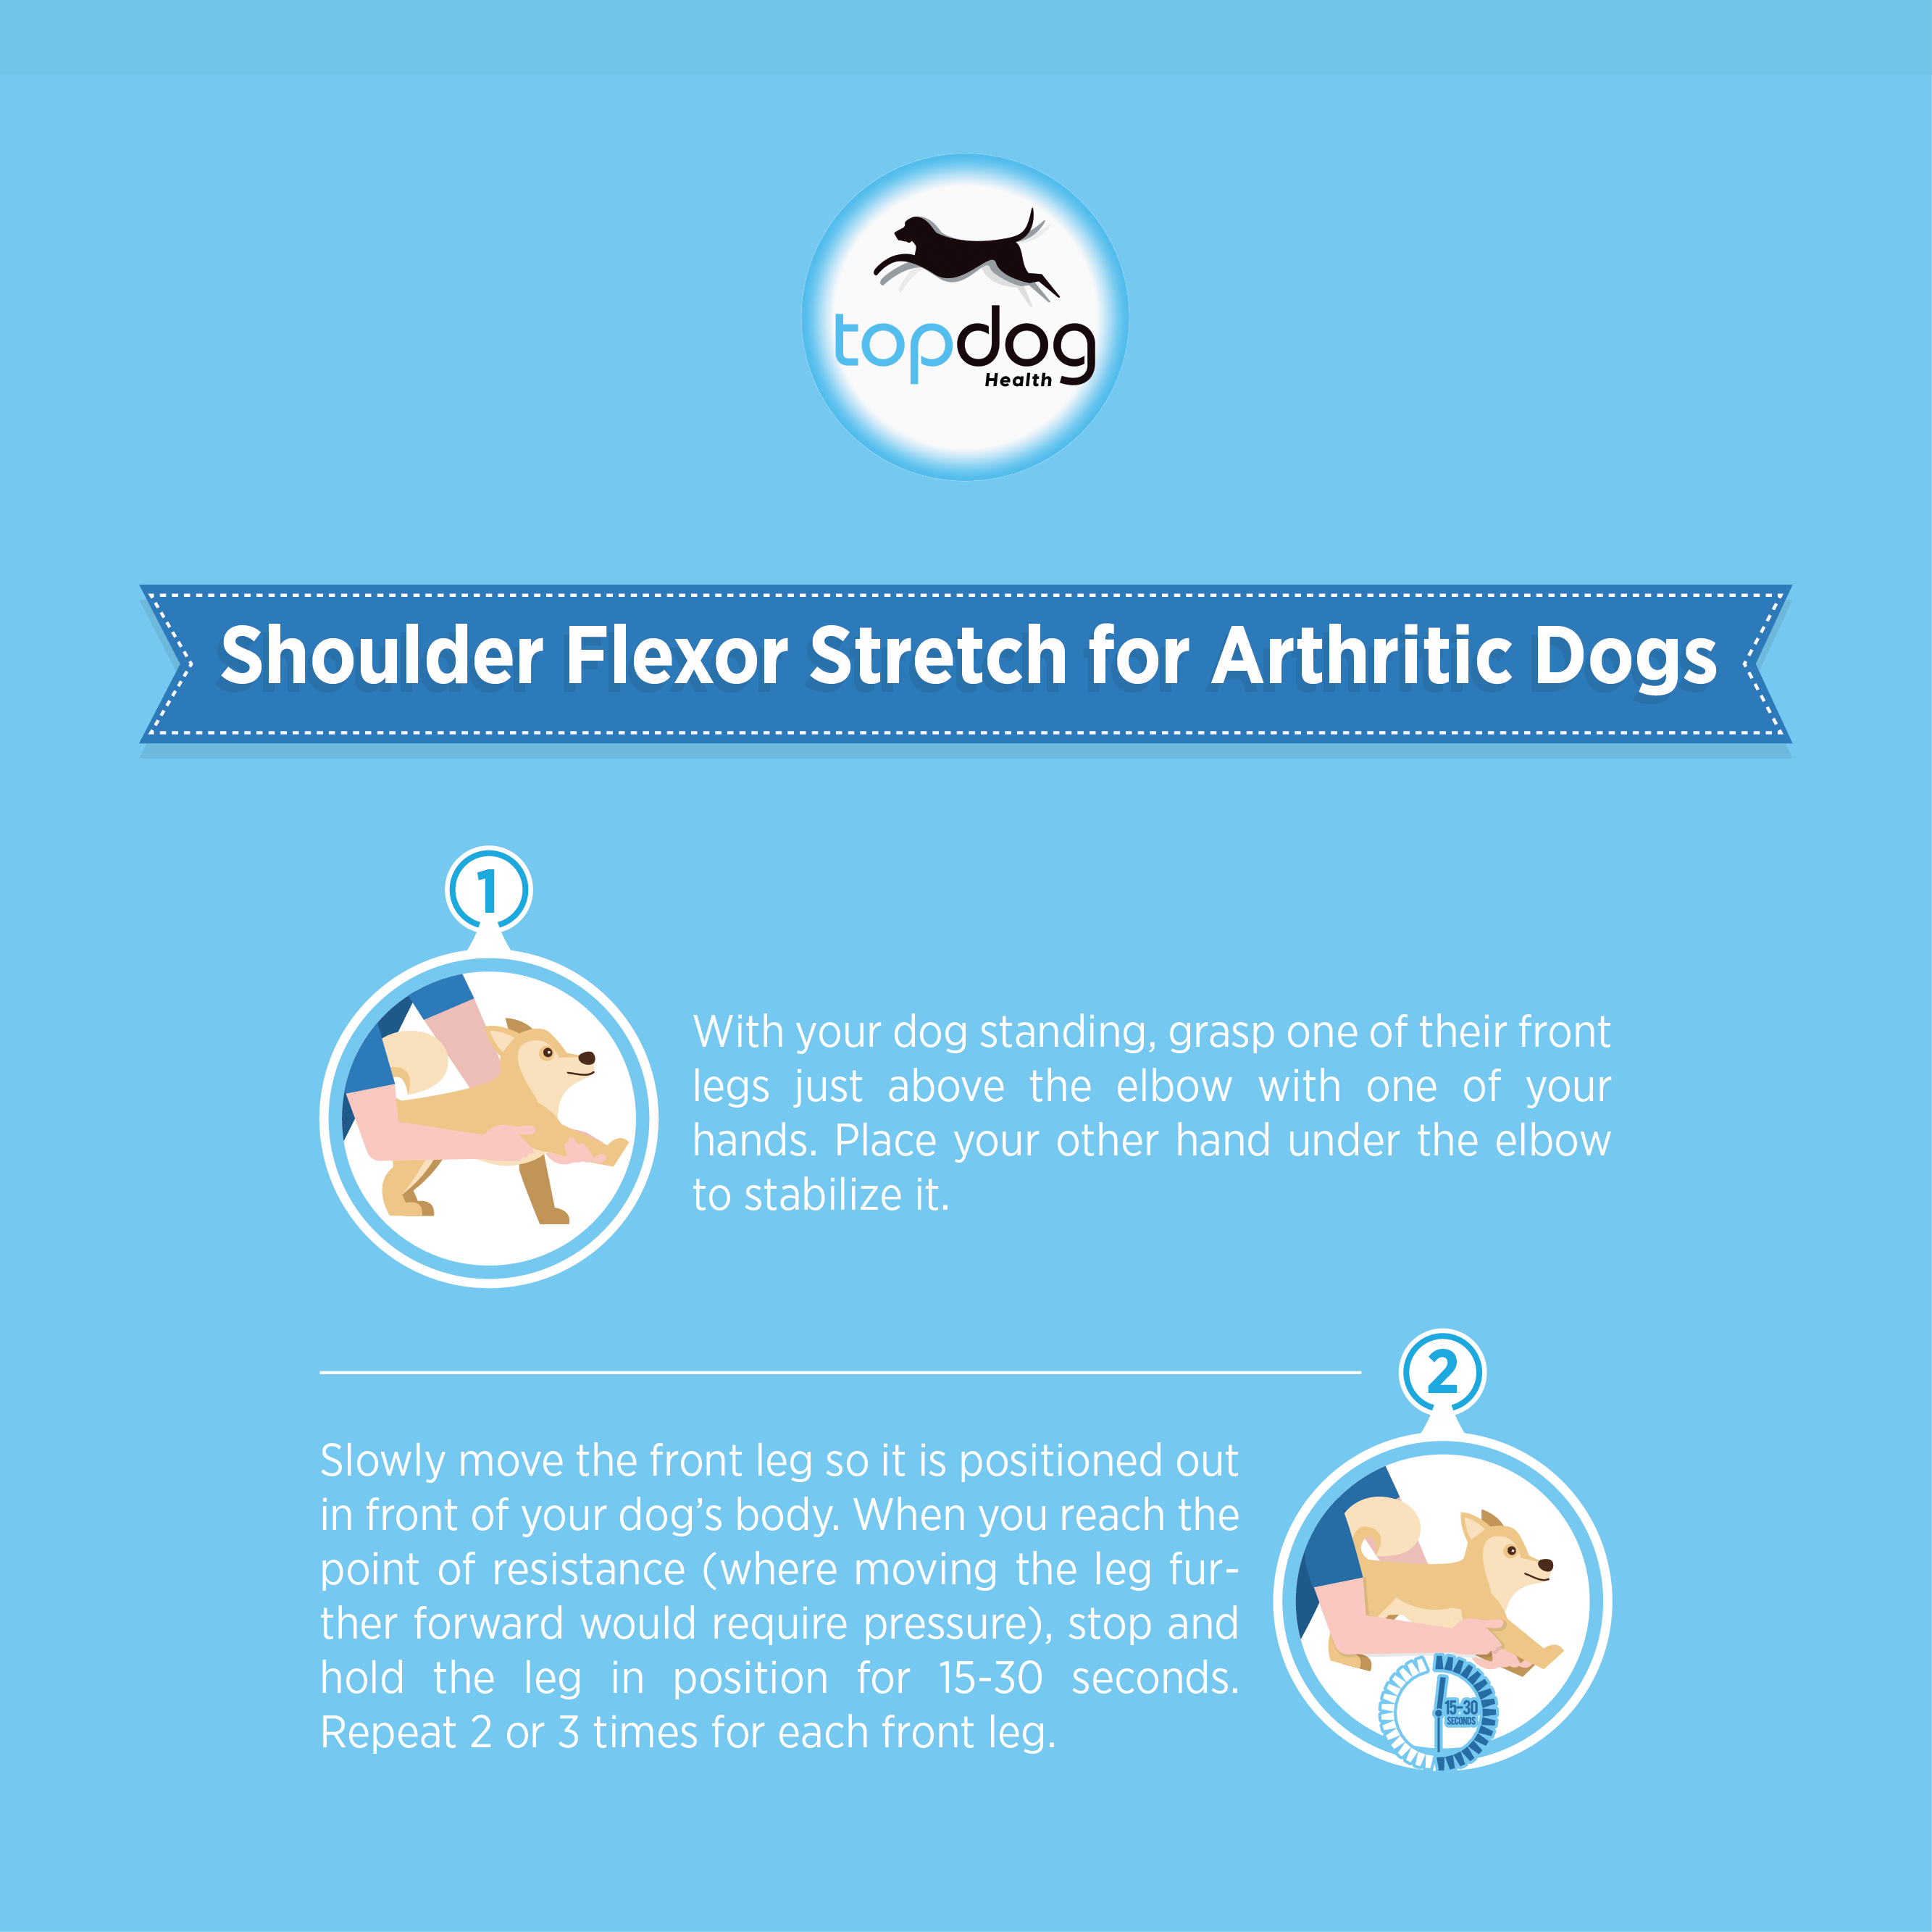 Shoulder Flexor Stretch